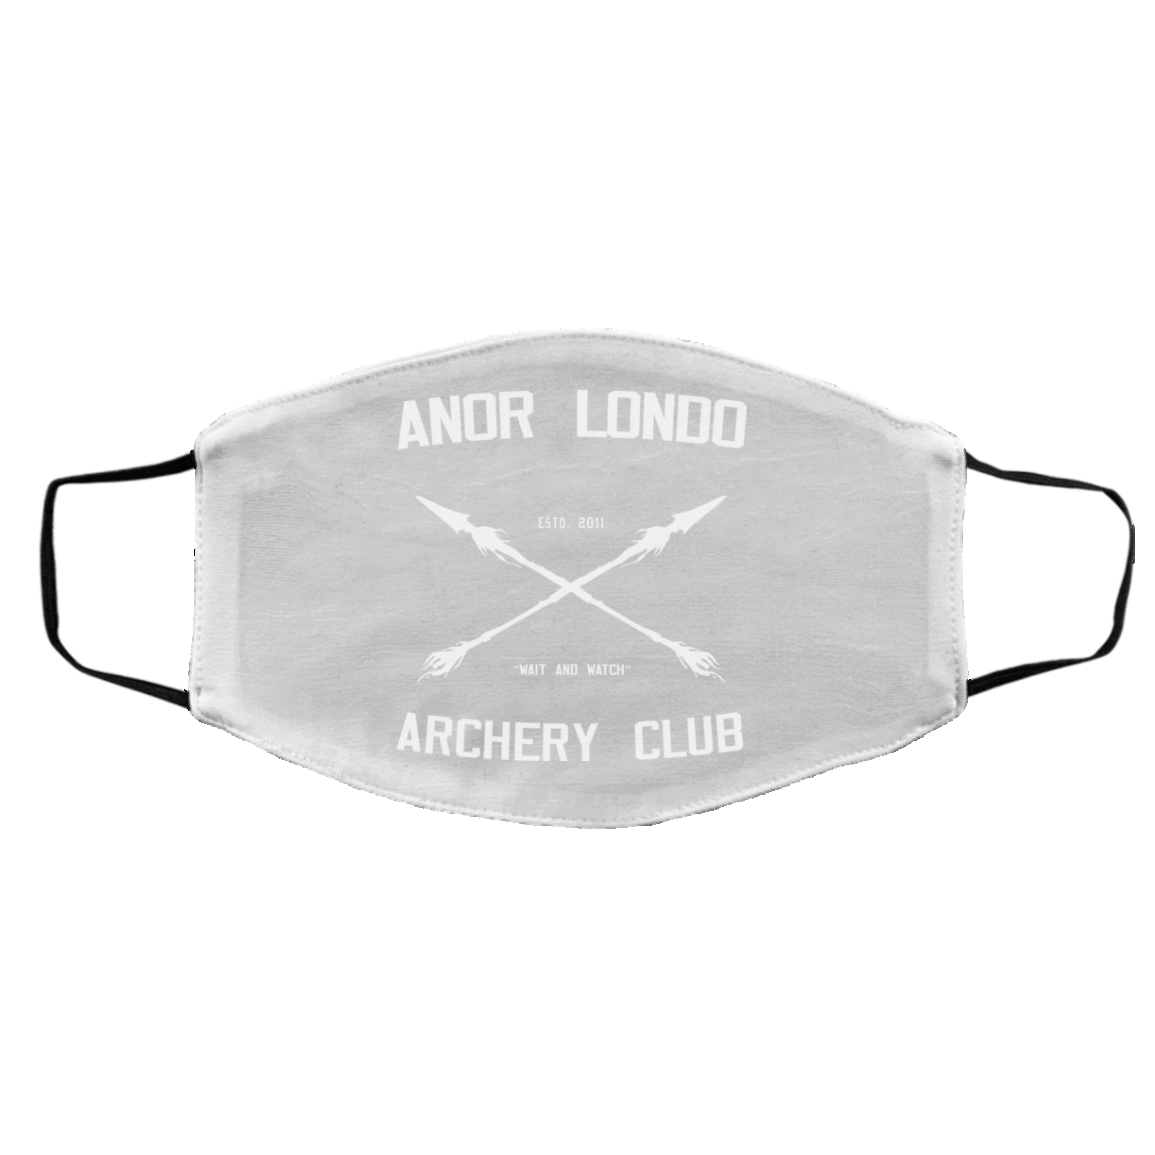 Anor Londo Archery Club 2011 Face Mask 1274-13170-88768017-59058 - Tee Ript